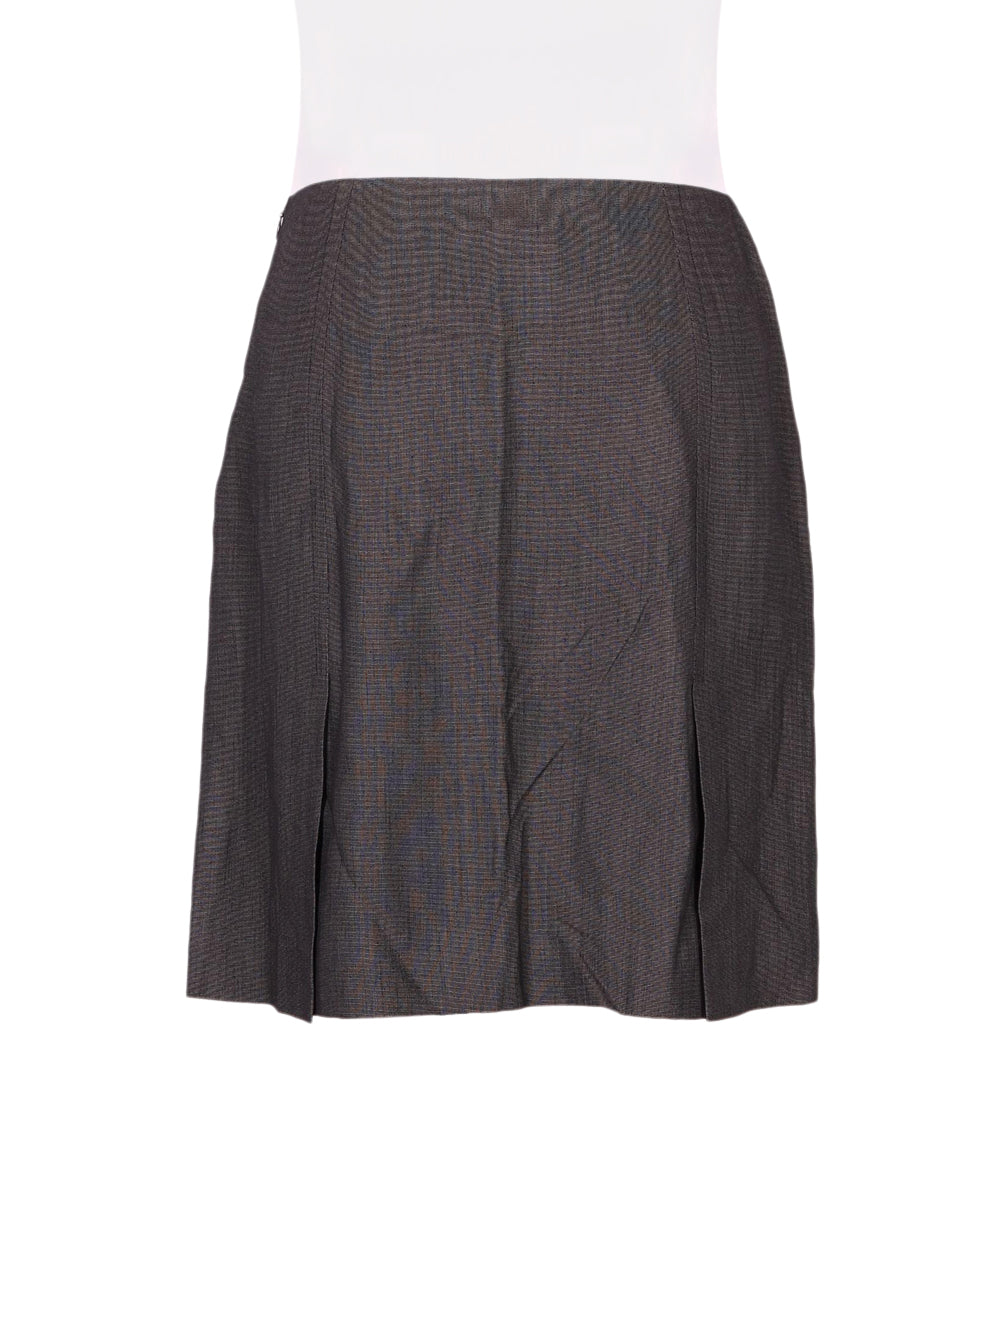 Back photo of Preloved Max Mara Black Woman's skirt - size 8/S